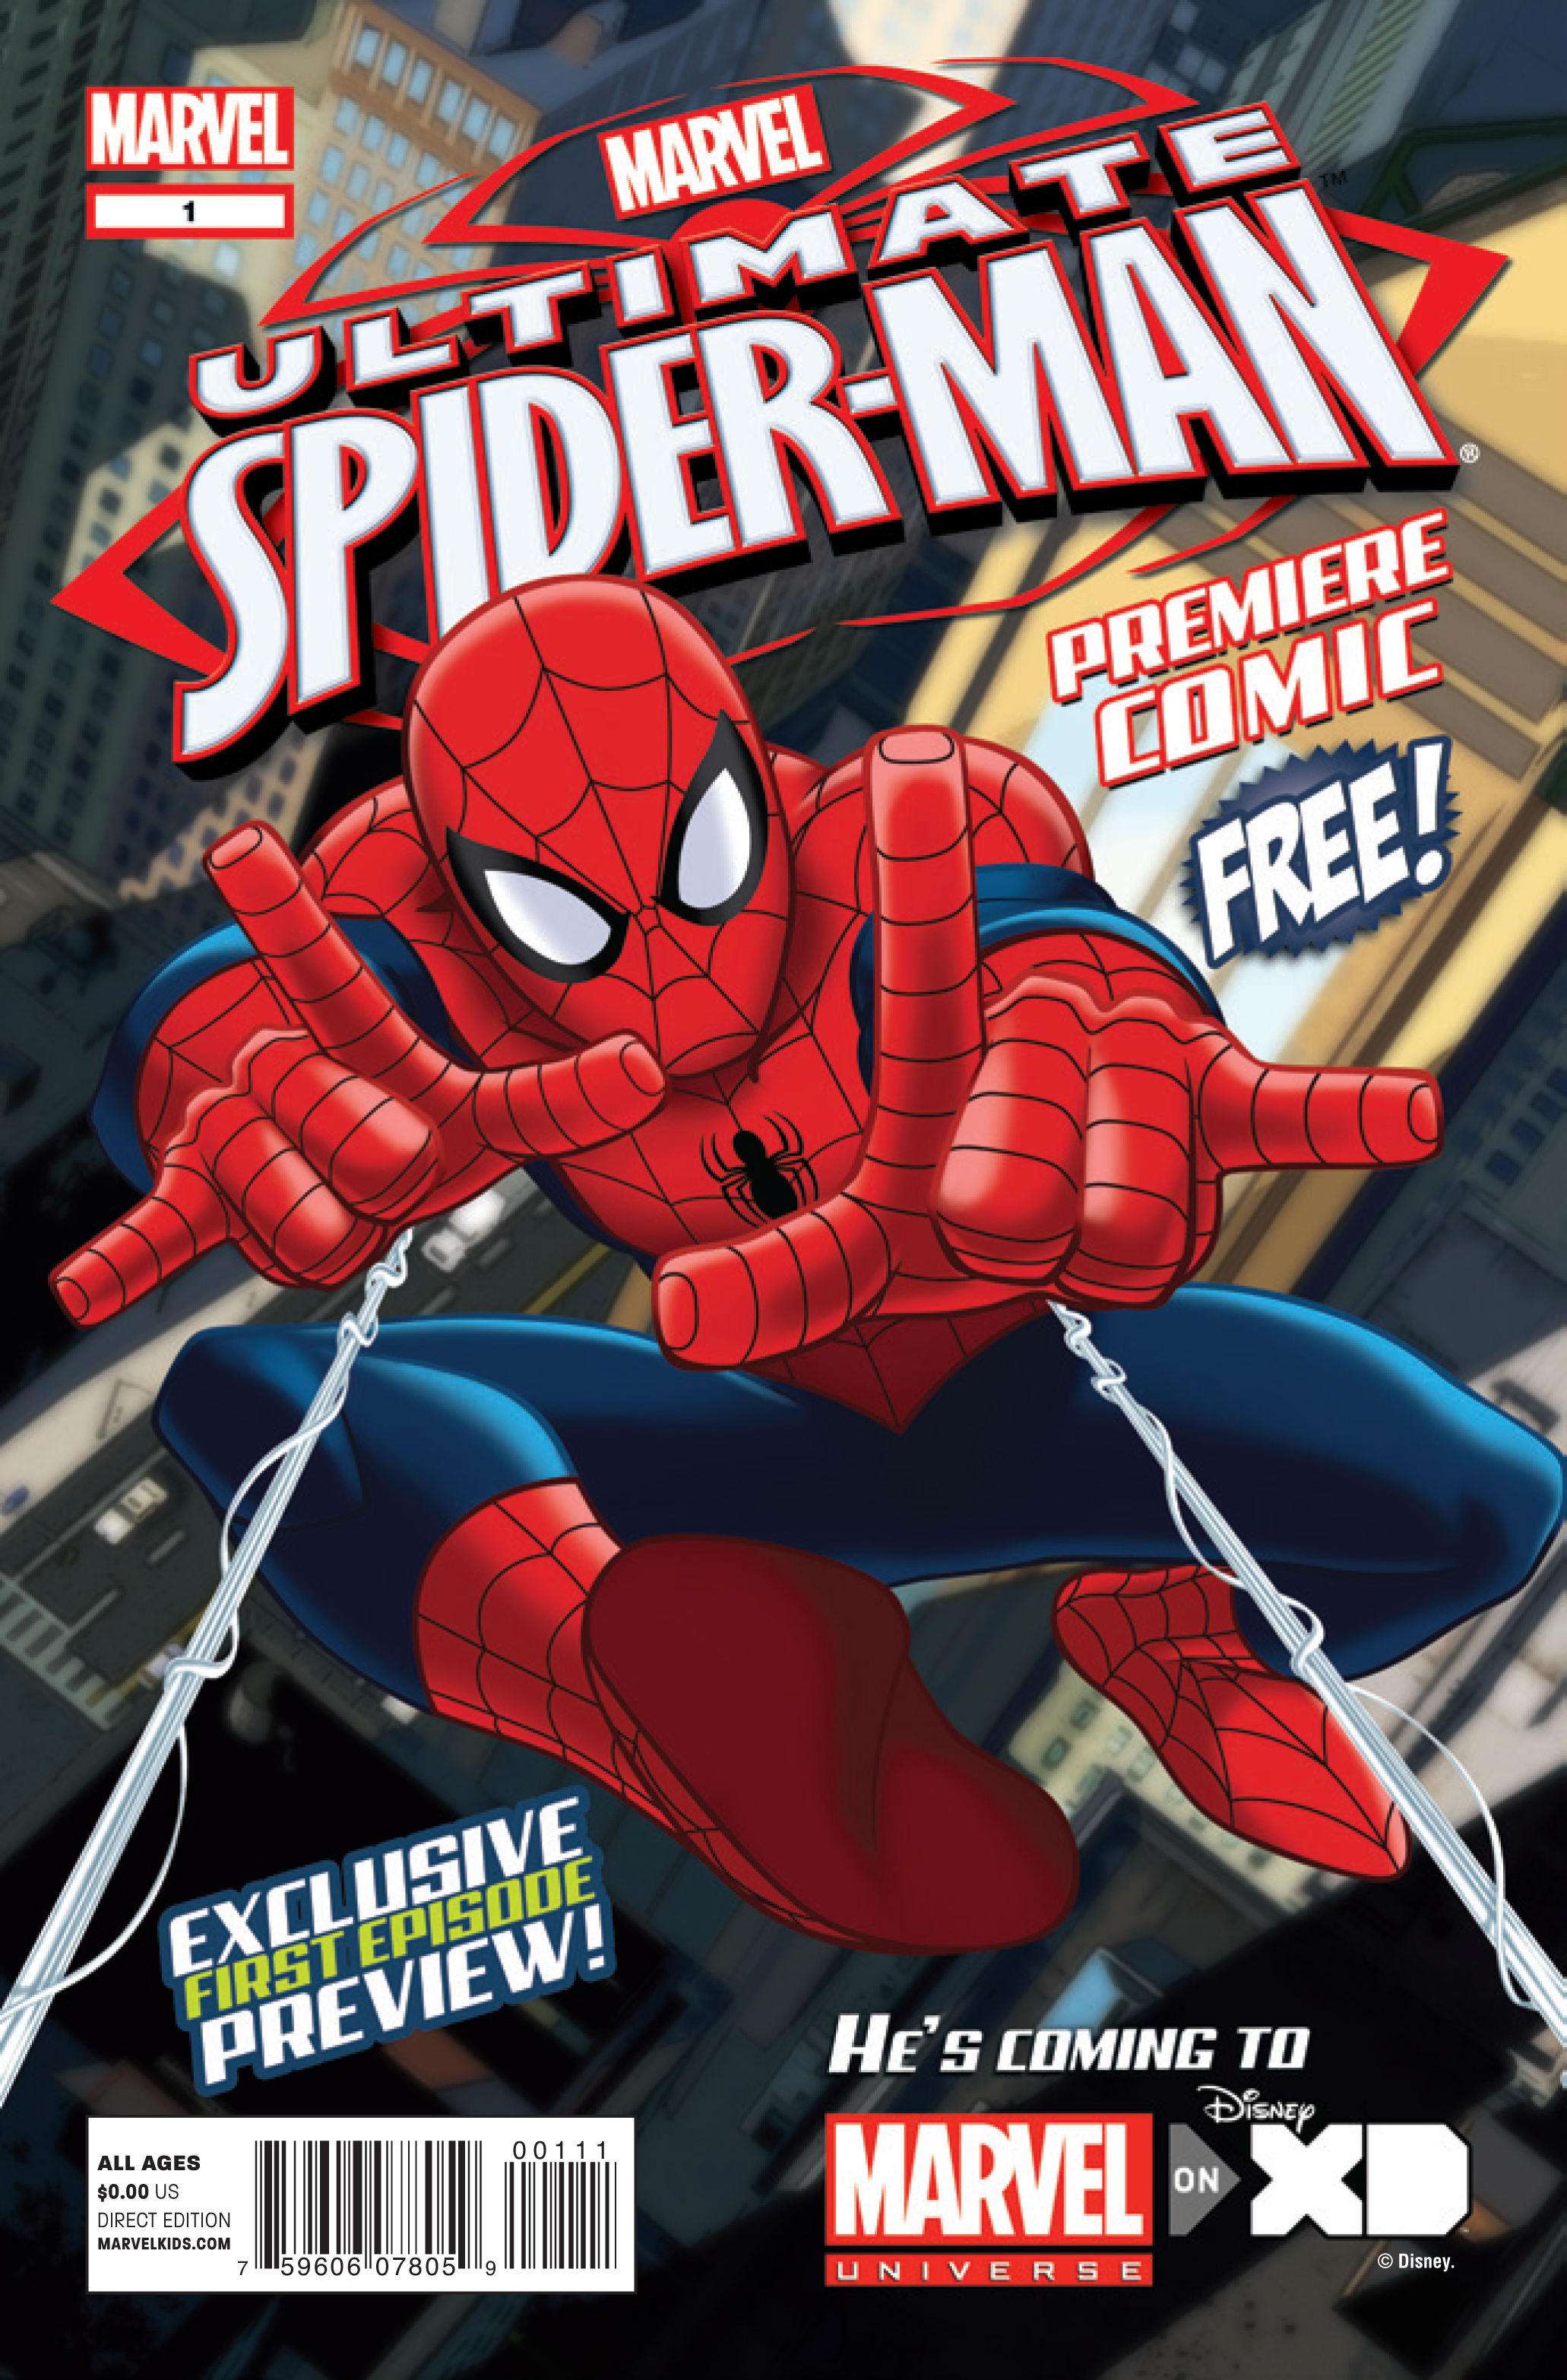 ULTIMATE SPIDER-MAN PREM COMIC #1 (BUNDLE OF 25)